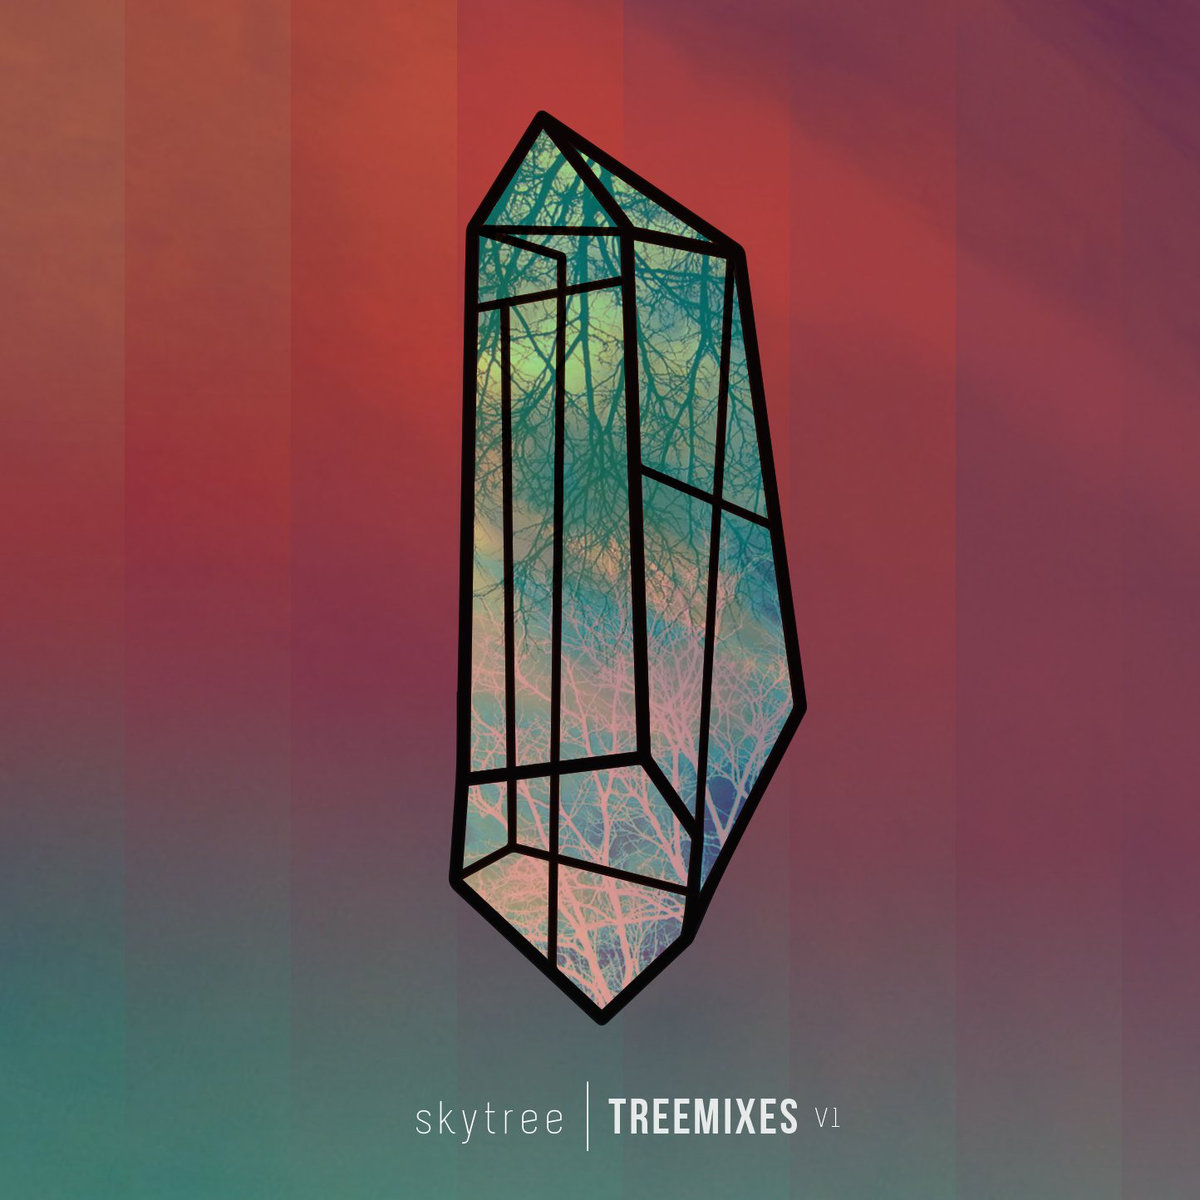 Skytree - To Illumination (Soulacybin remix) @ 'Treemixes V1' album (Austin)